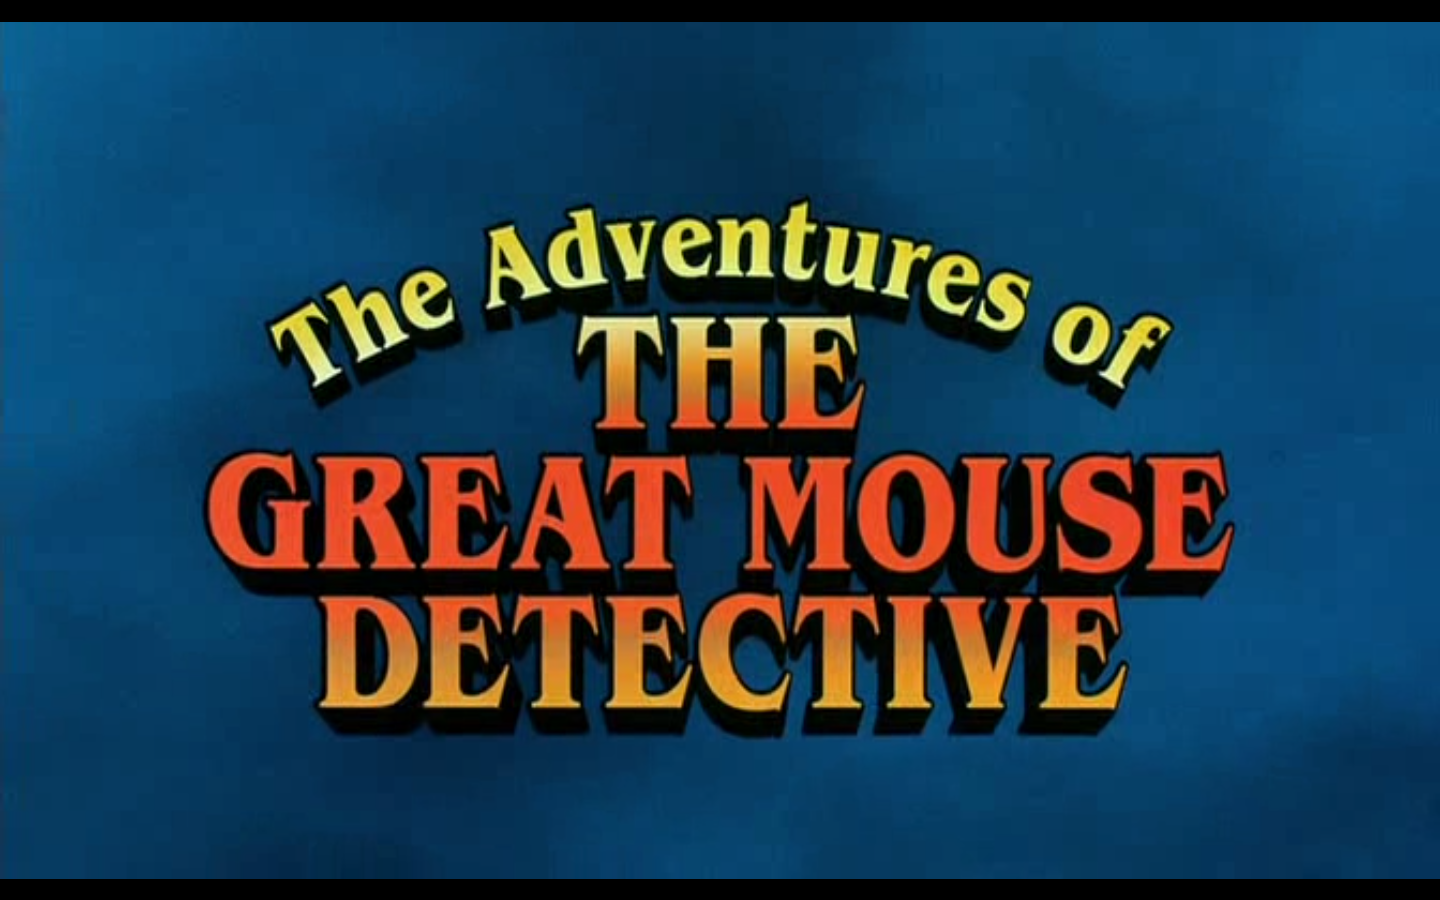 The Great Mouse Detective Backgrounds on Wallpapers Vista